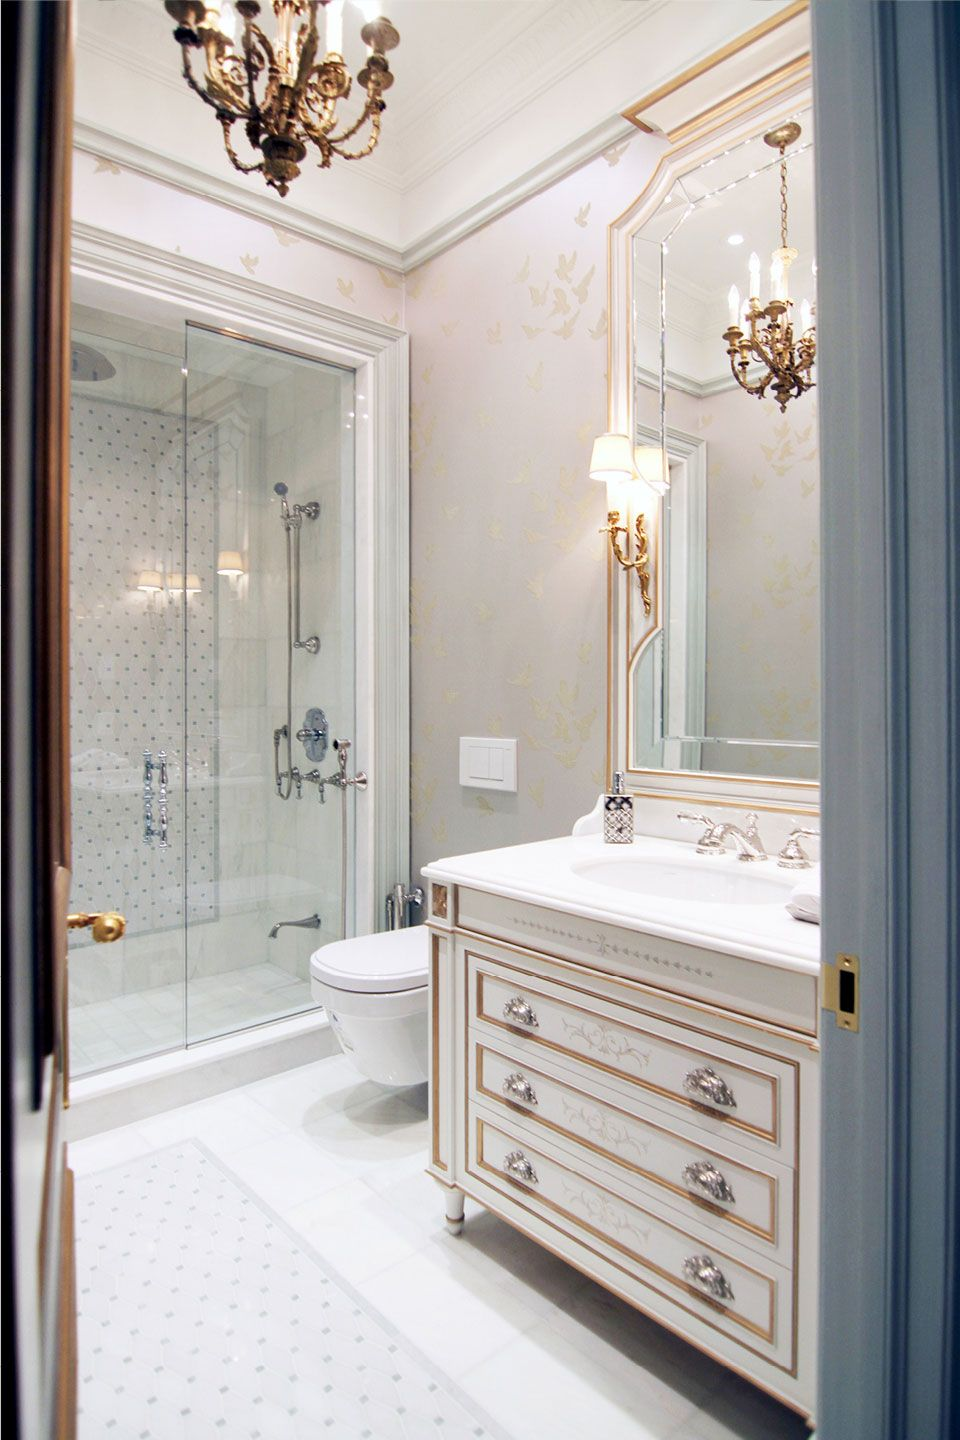 The Four Seasons Private Residence U2013 Tomas Pearce Interior Design Consulting  Inc.